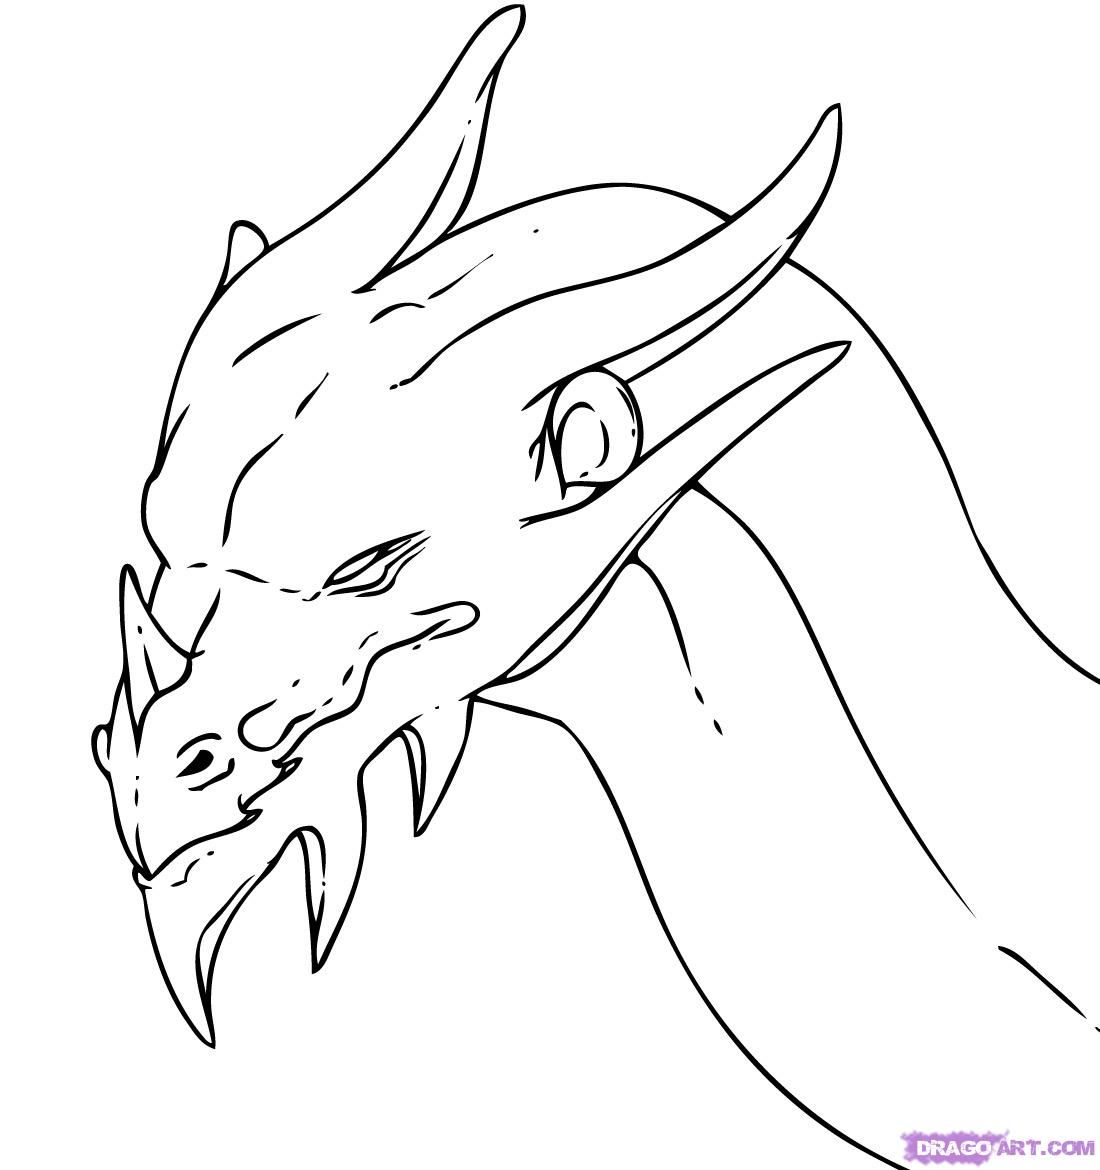 Dragons Drawings That Are Easy